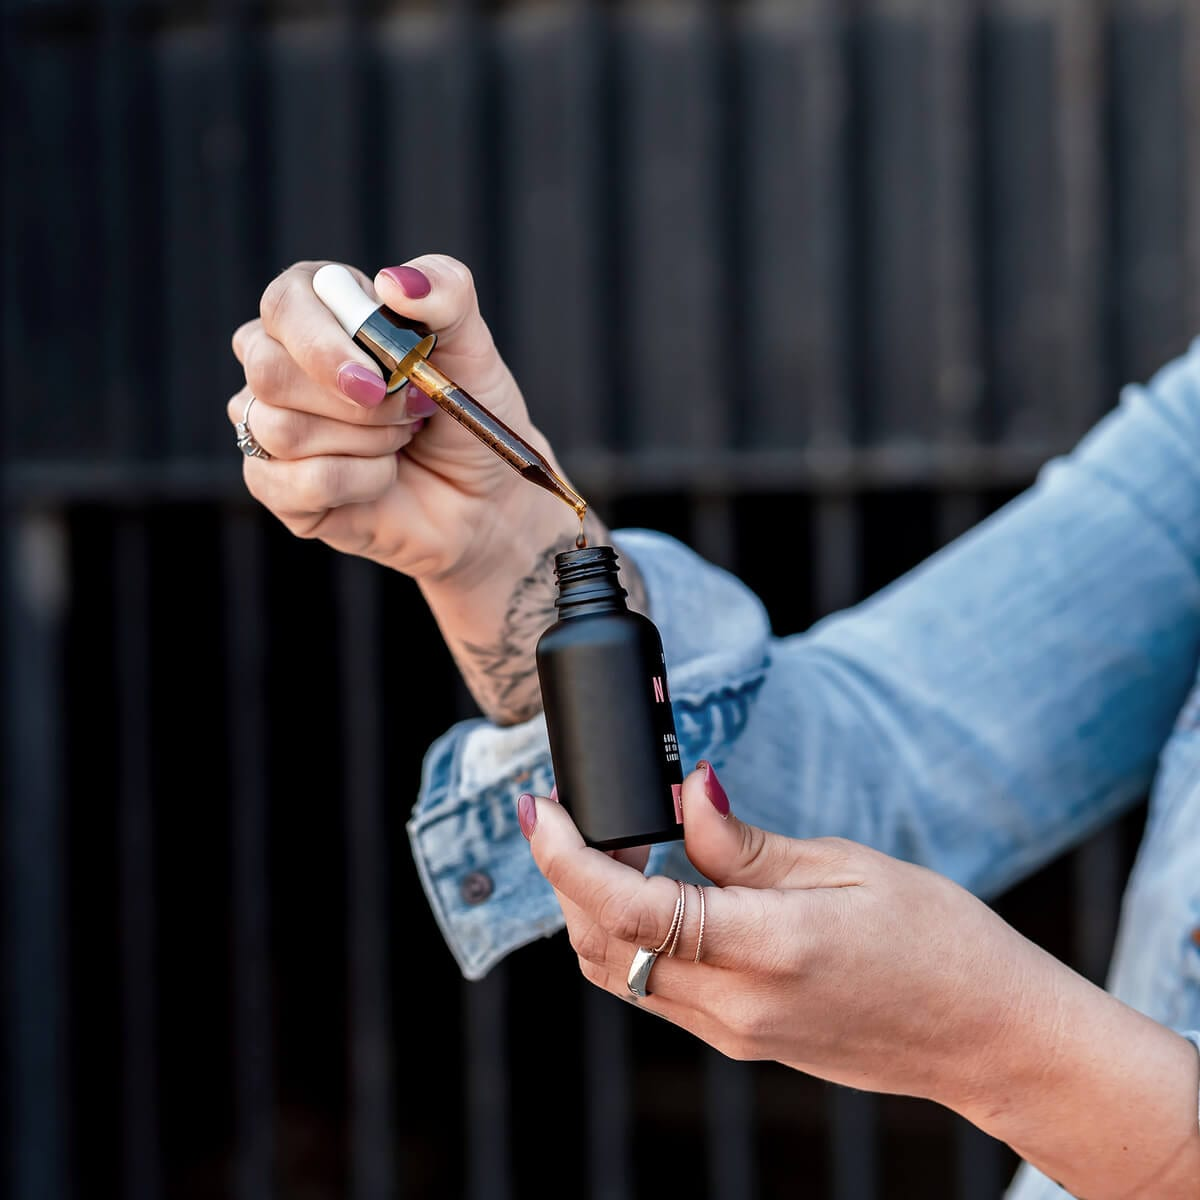 woman wearing jean jacket filling a dropper with CBD oil, black CBD oil bottle